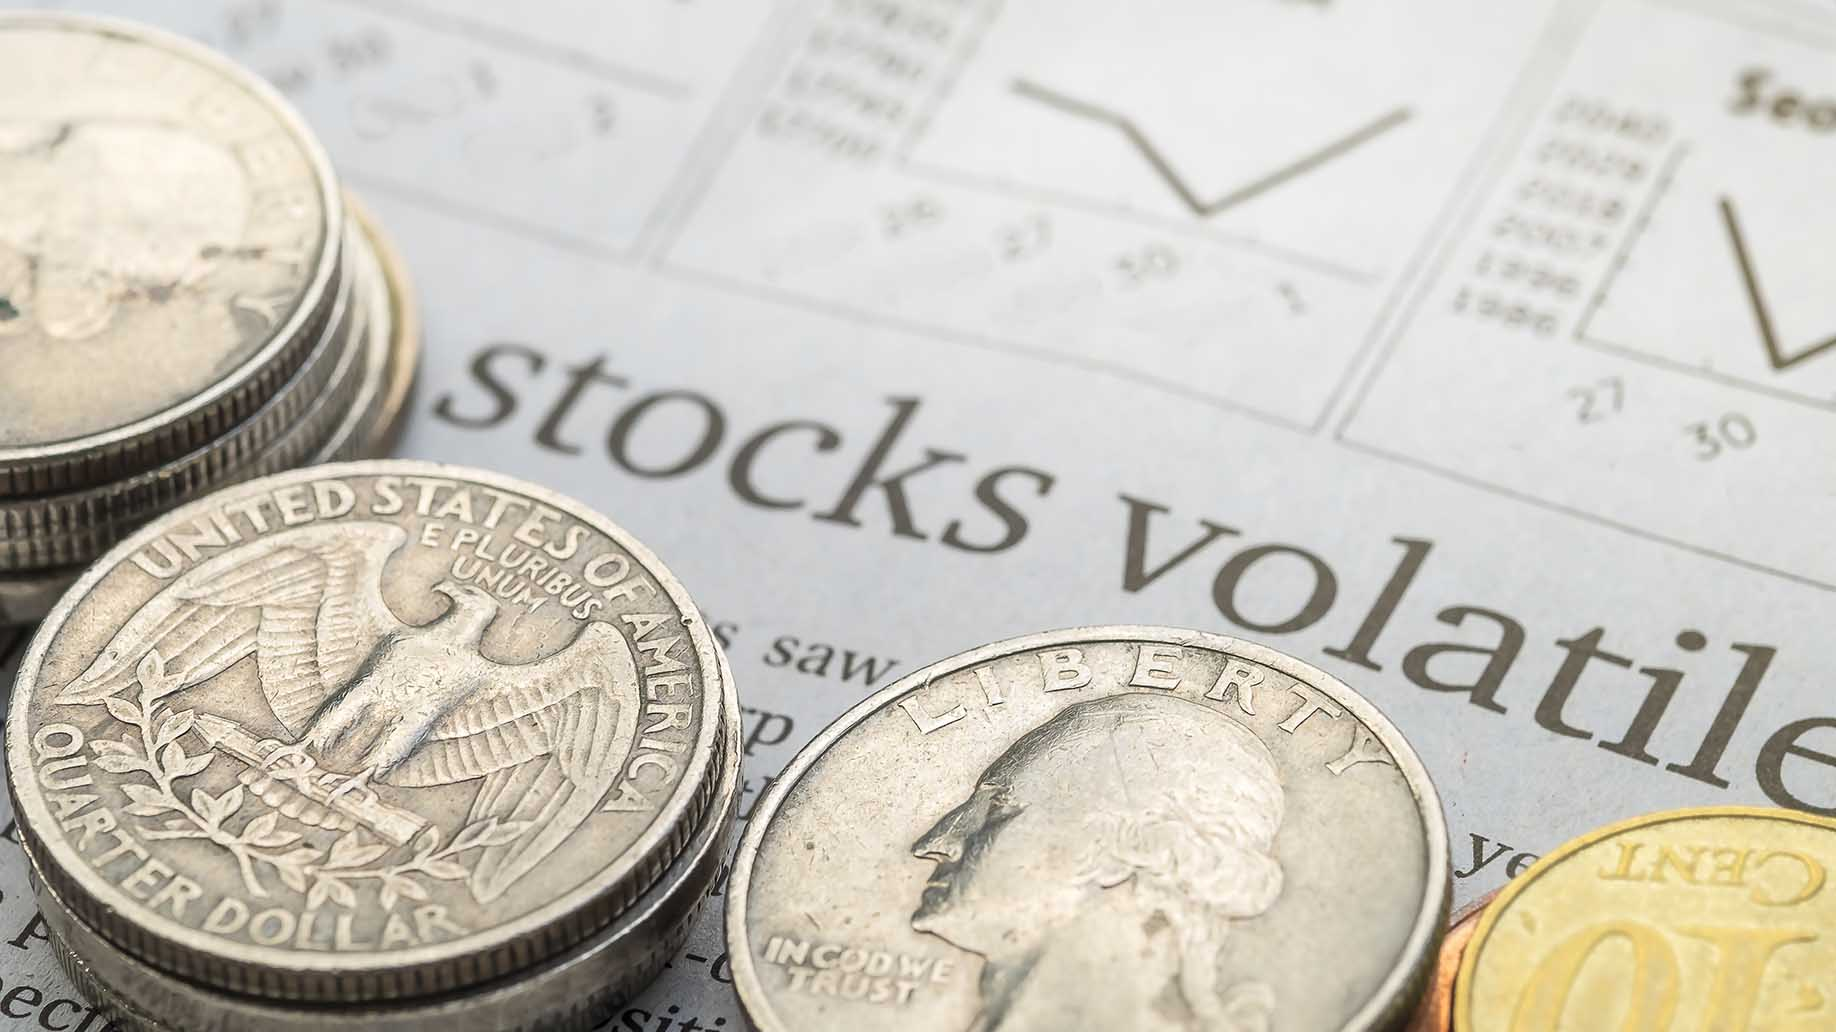 stock market page showing stock volatile word in newpaper with coins